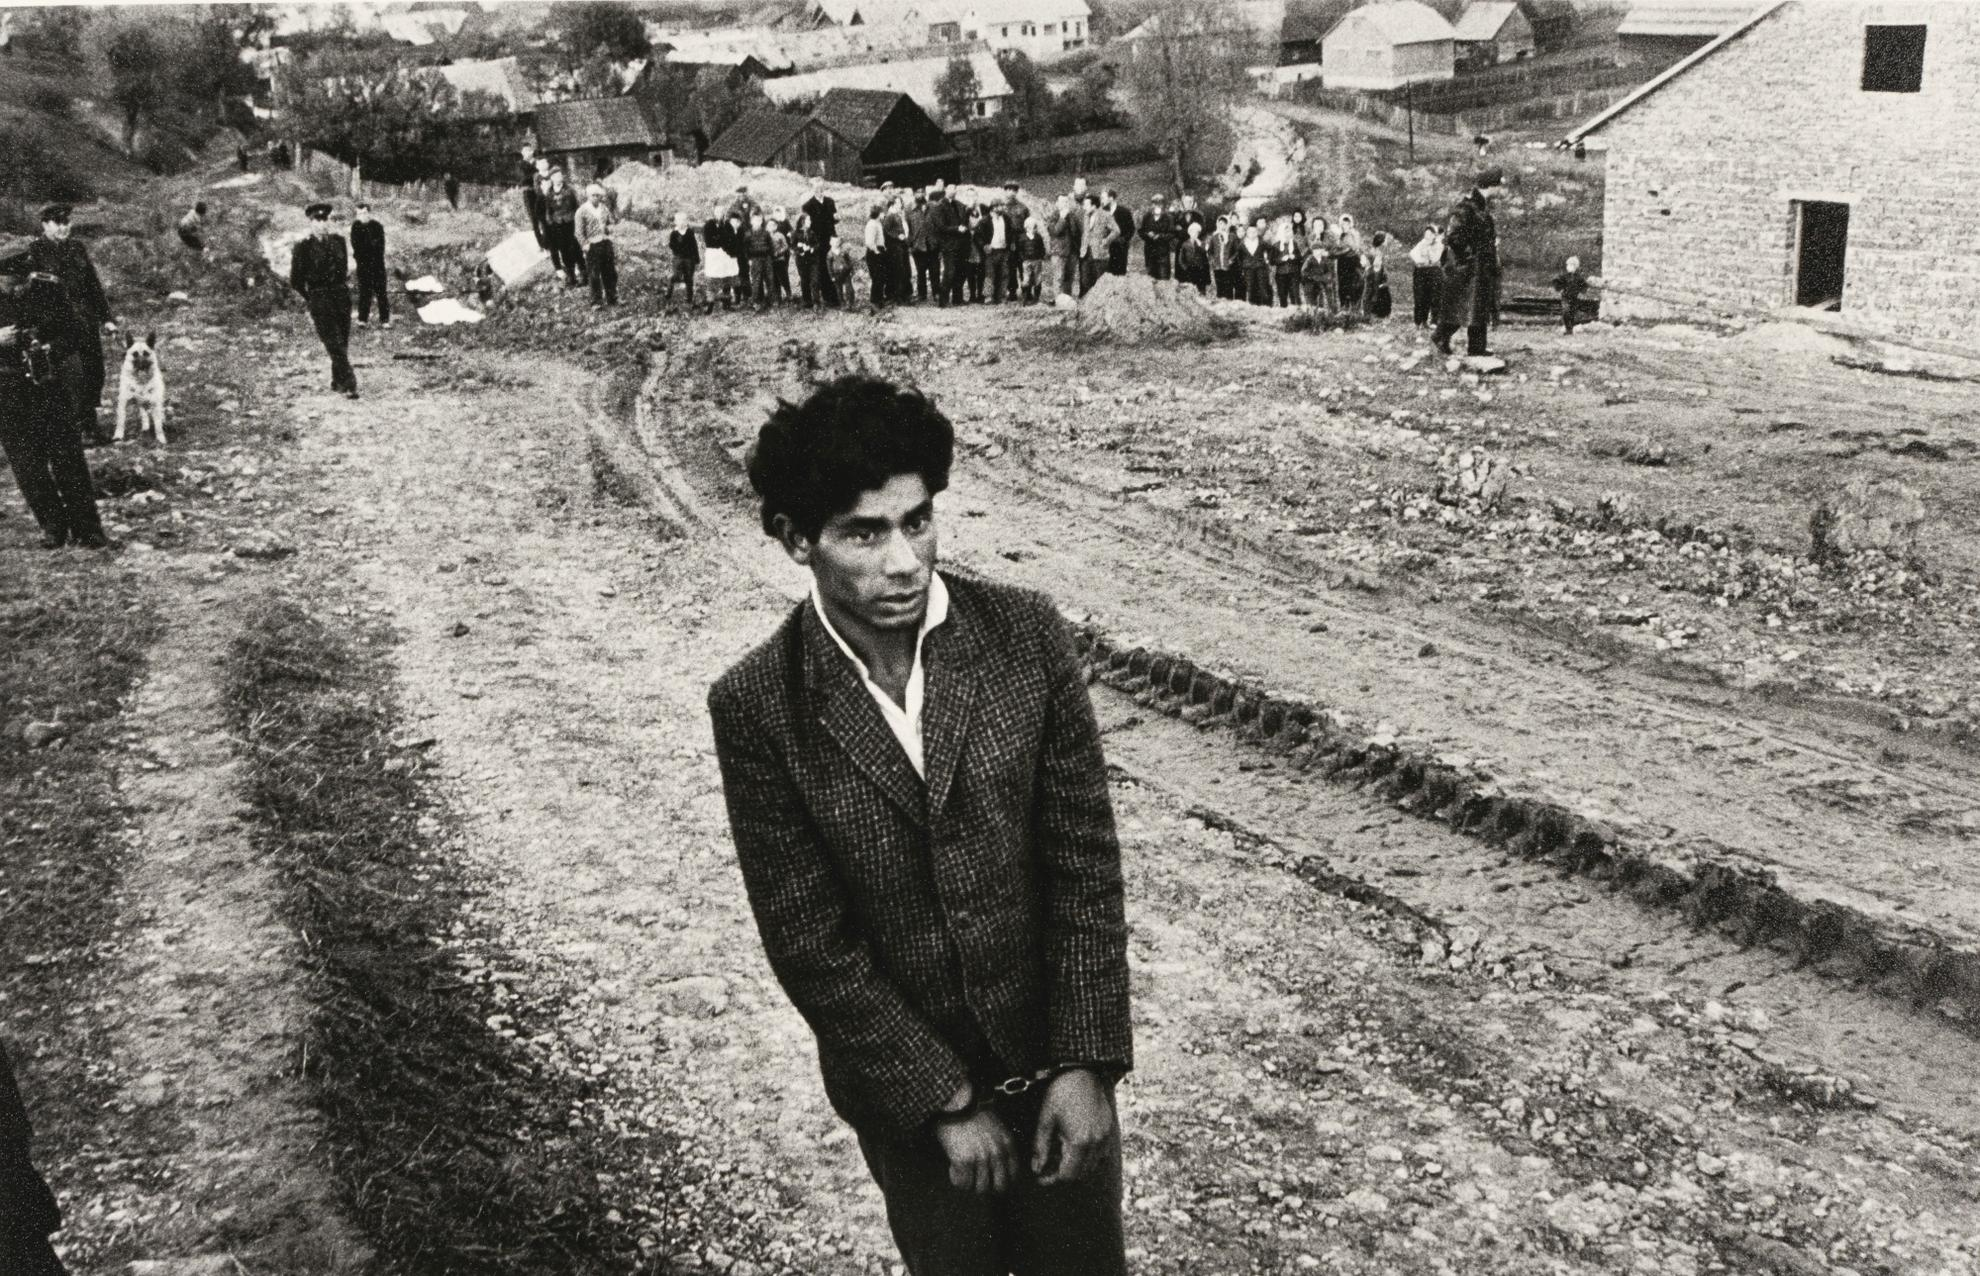 Josef Koudelka-Reconstruction Of A Homicide. In The Foreground: A Young Gipsy Suspected Of Being Guilty, Czechoslovakia, Solvaki, Jarabina-1963